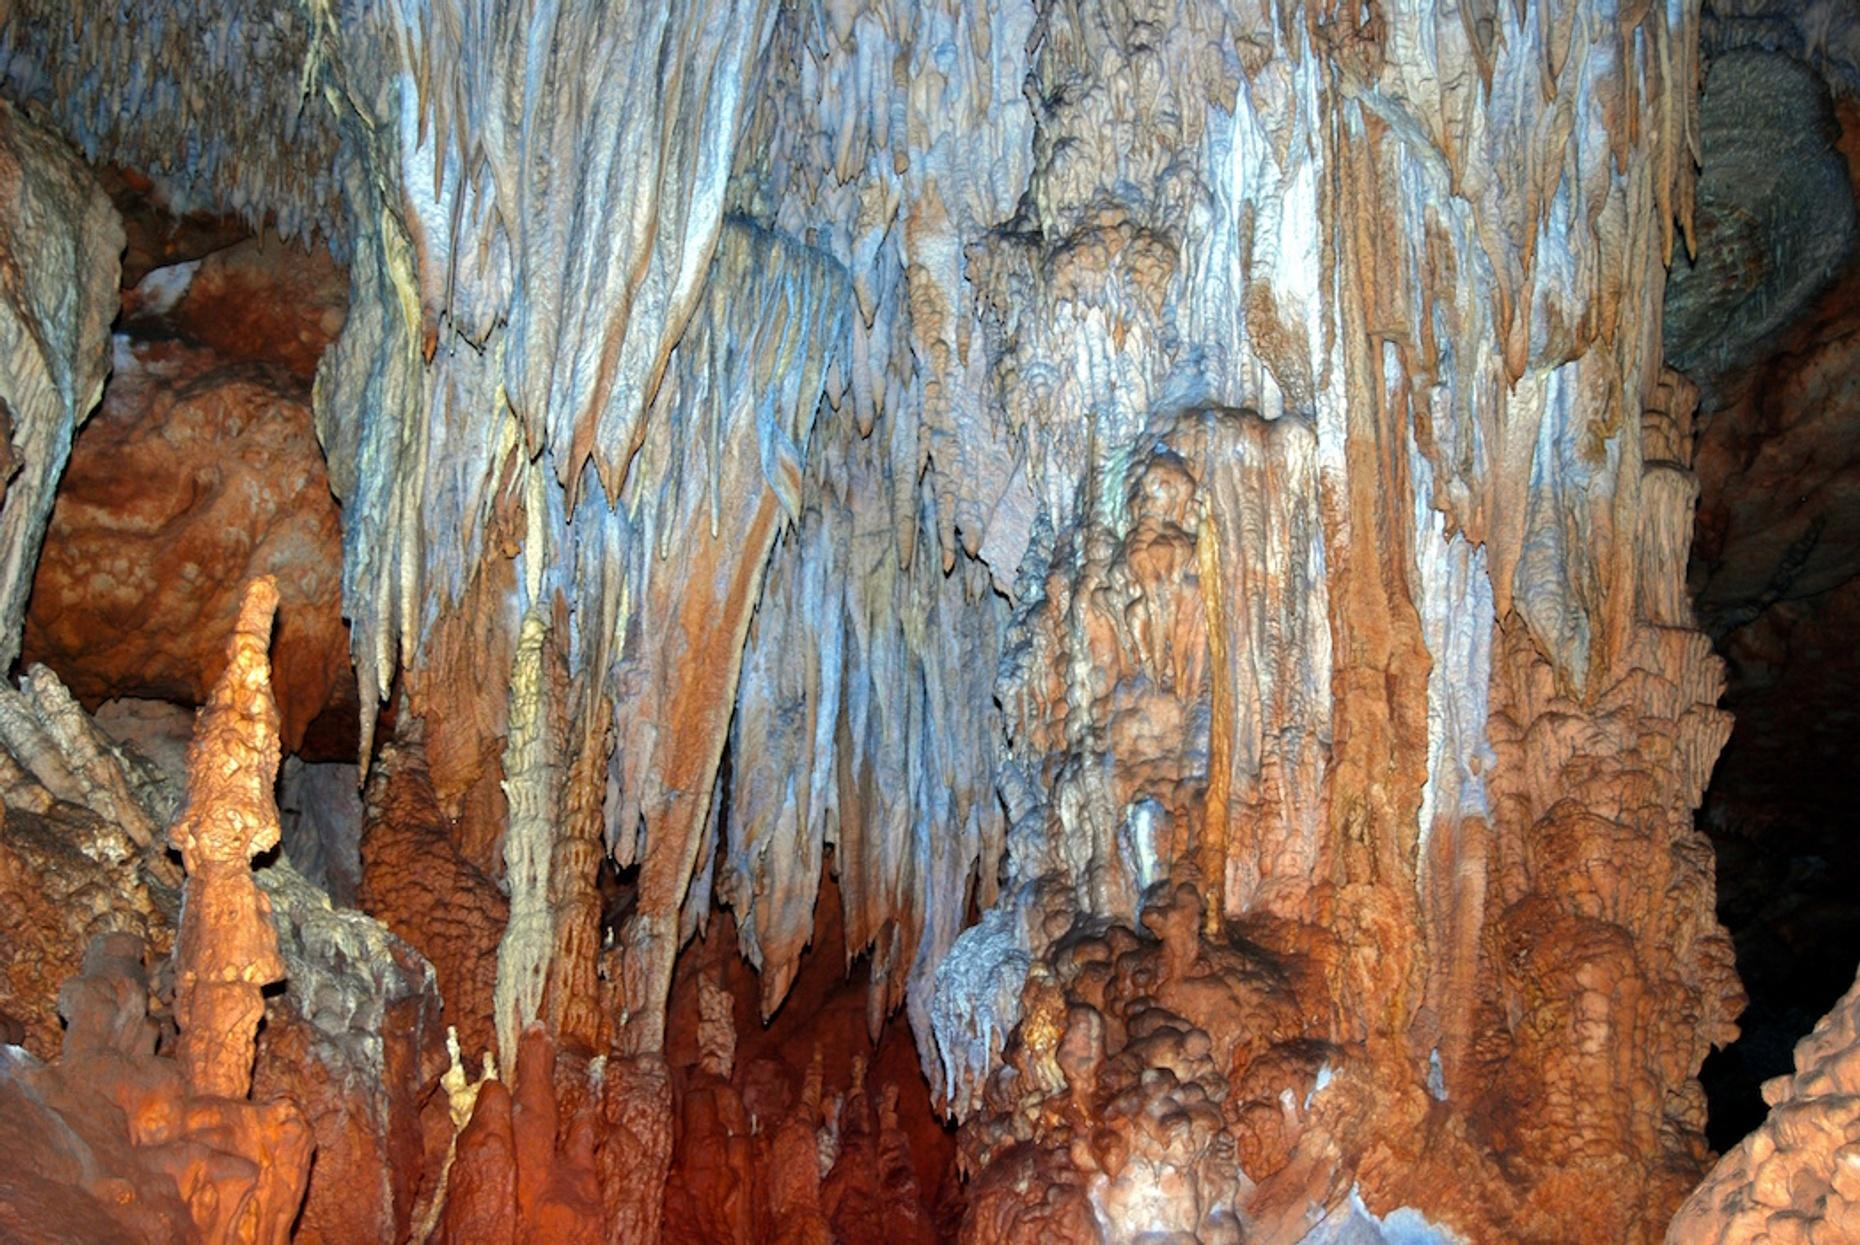 Guided Actun Tunichil Muknal Cave Tour in Belize